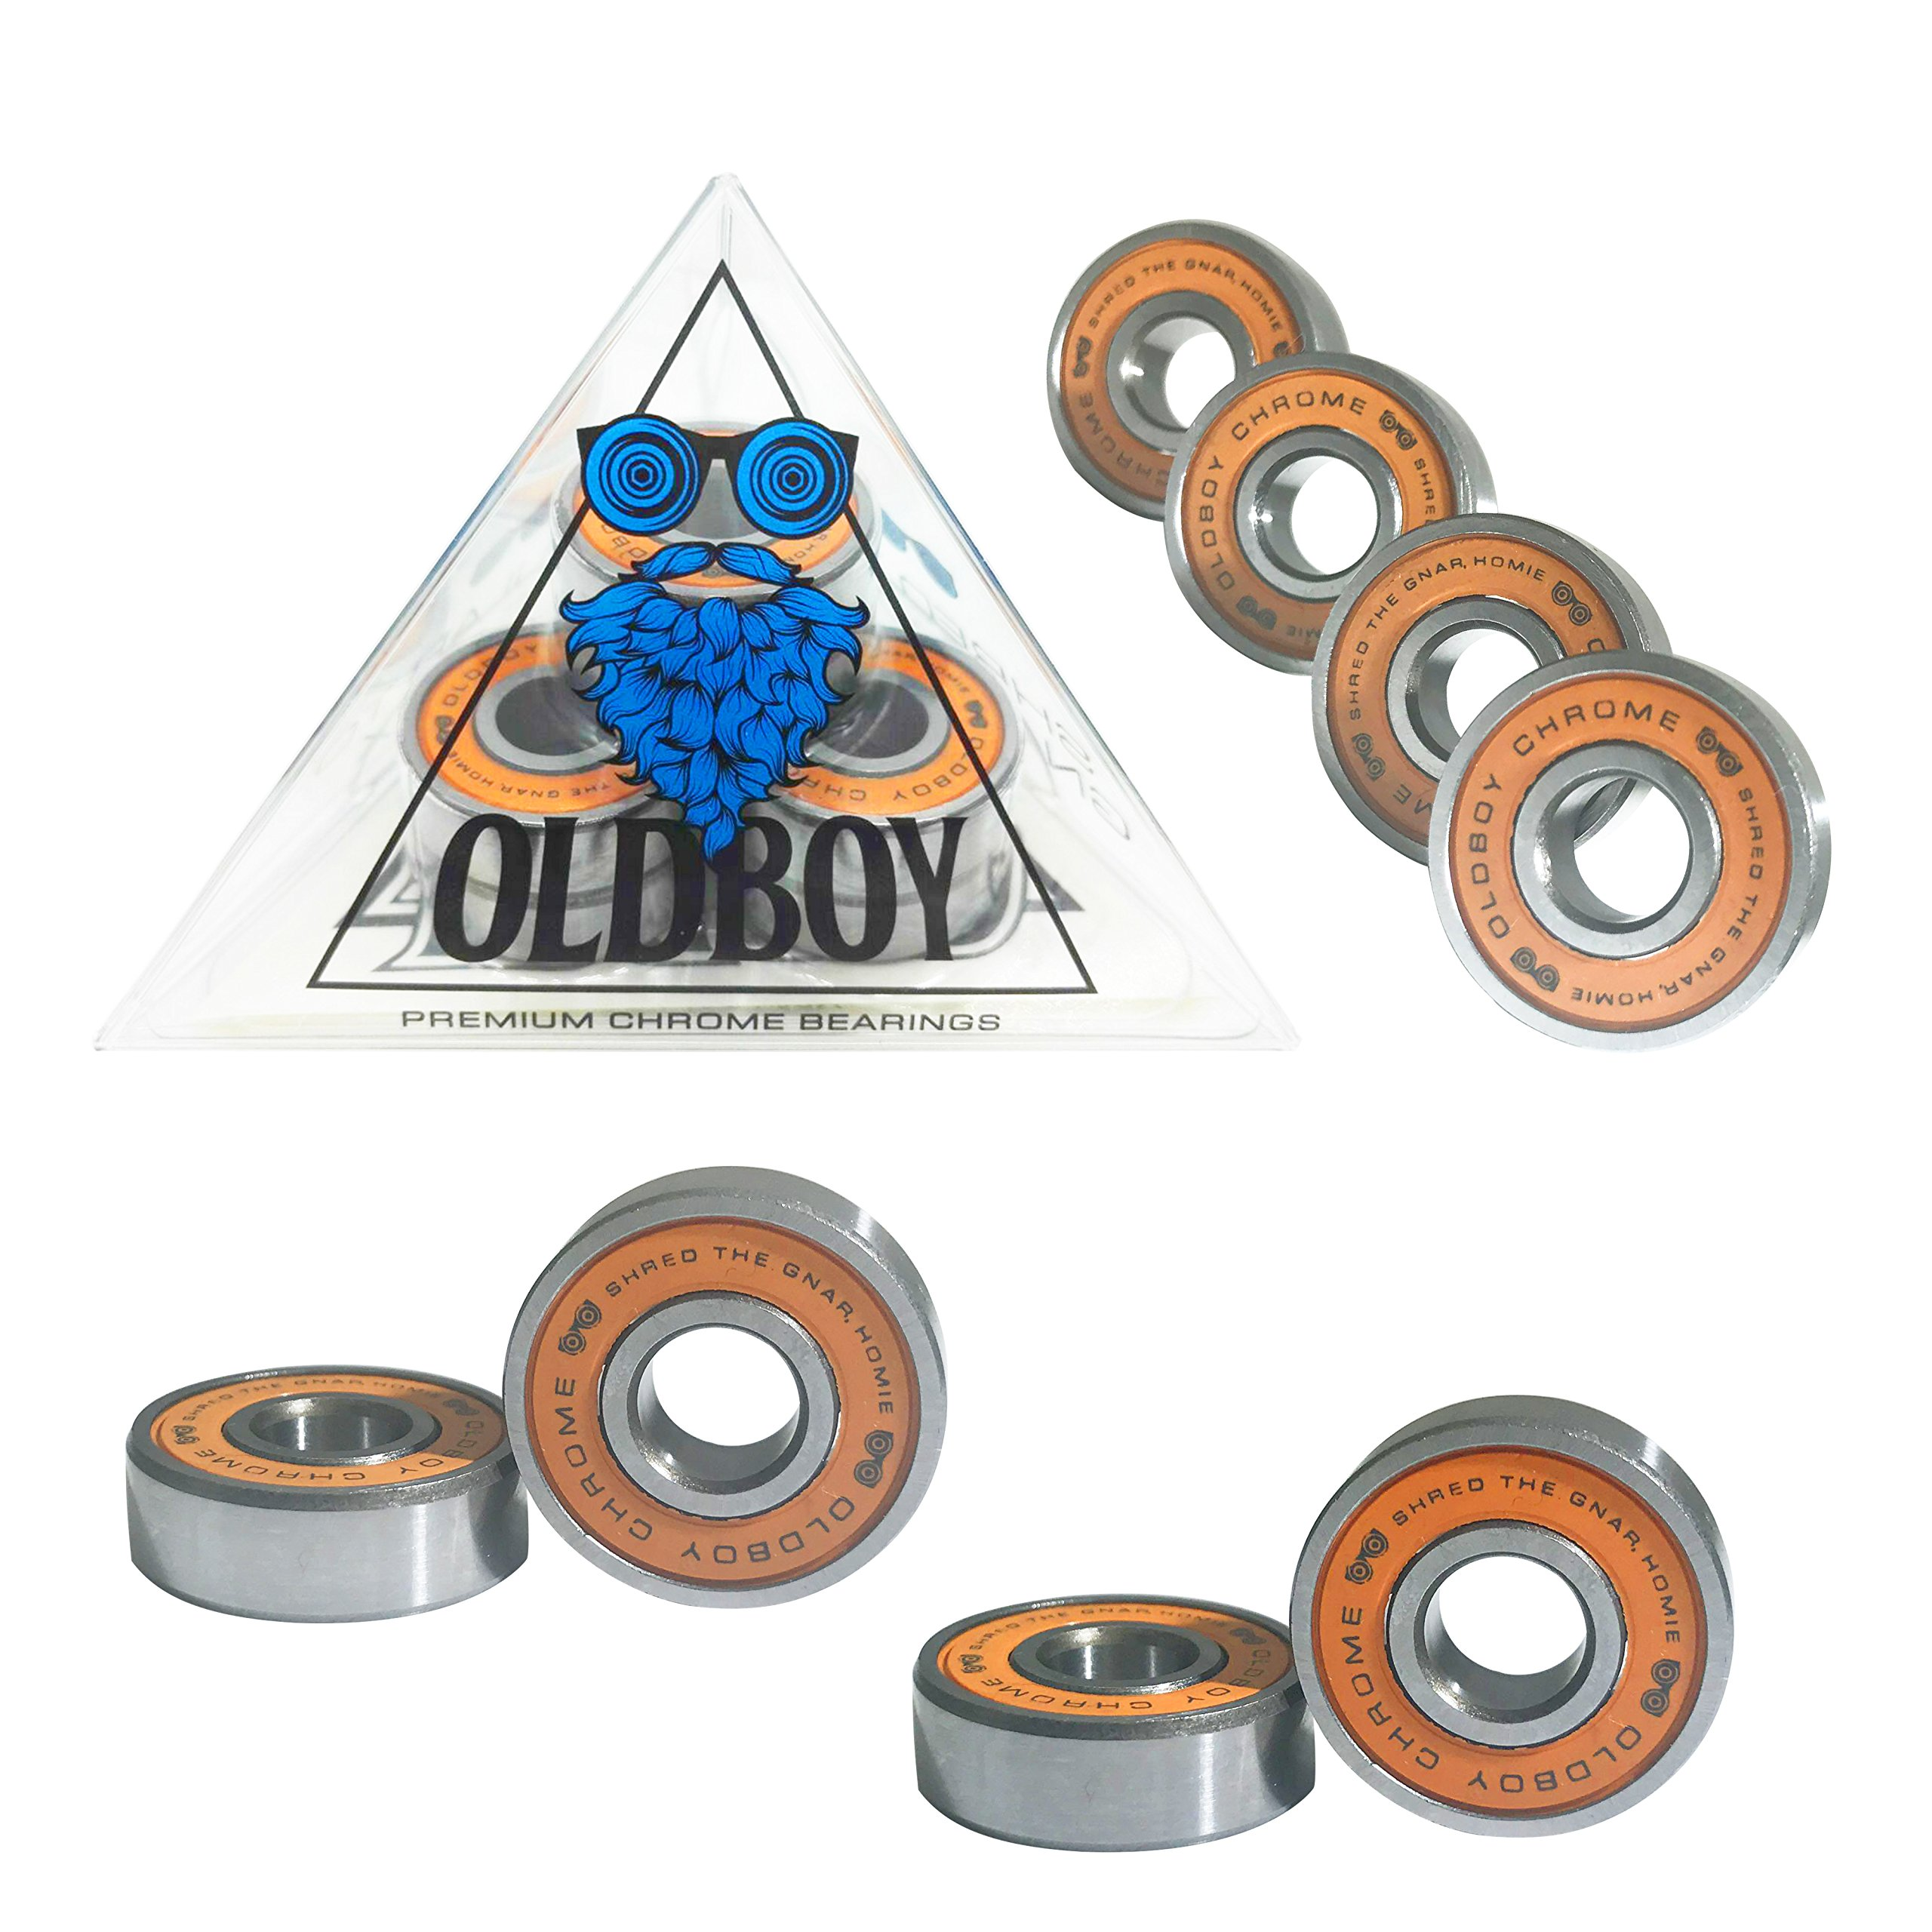 Oldboy Chrome Skateboard Bearings with tempered steel balls for skates and longboards